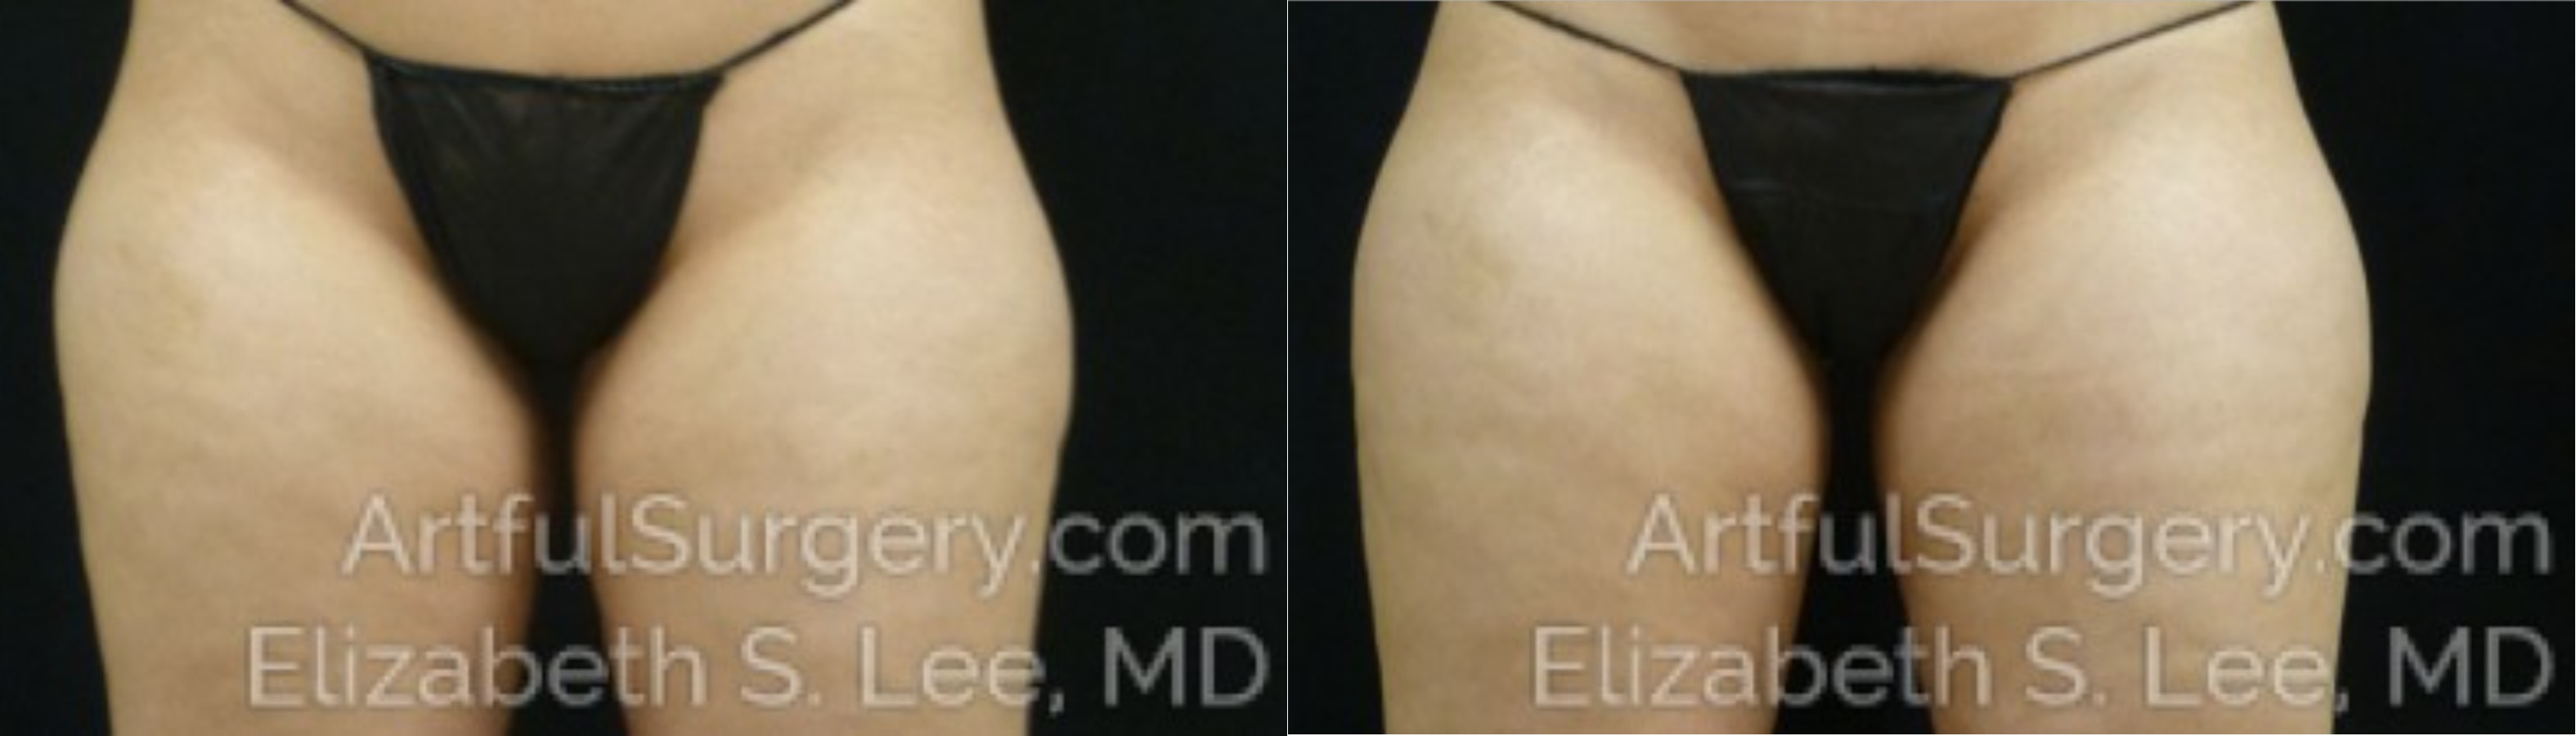 CoolSculpting Before & After Patient #9760